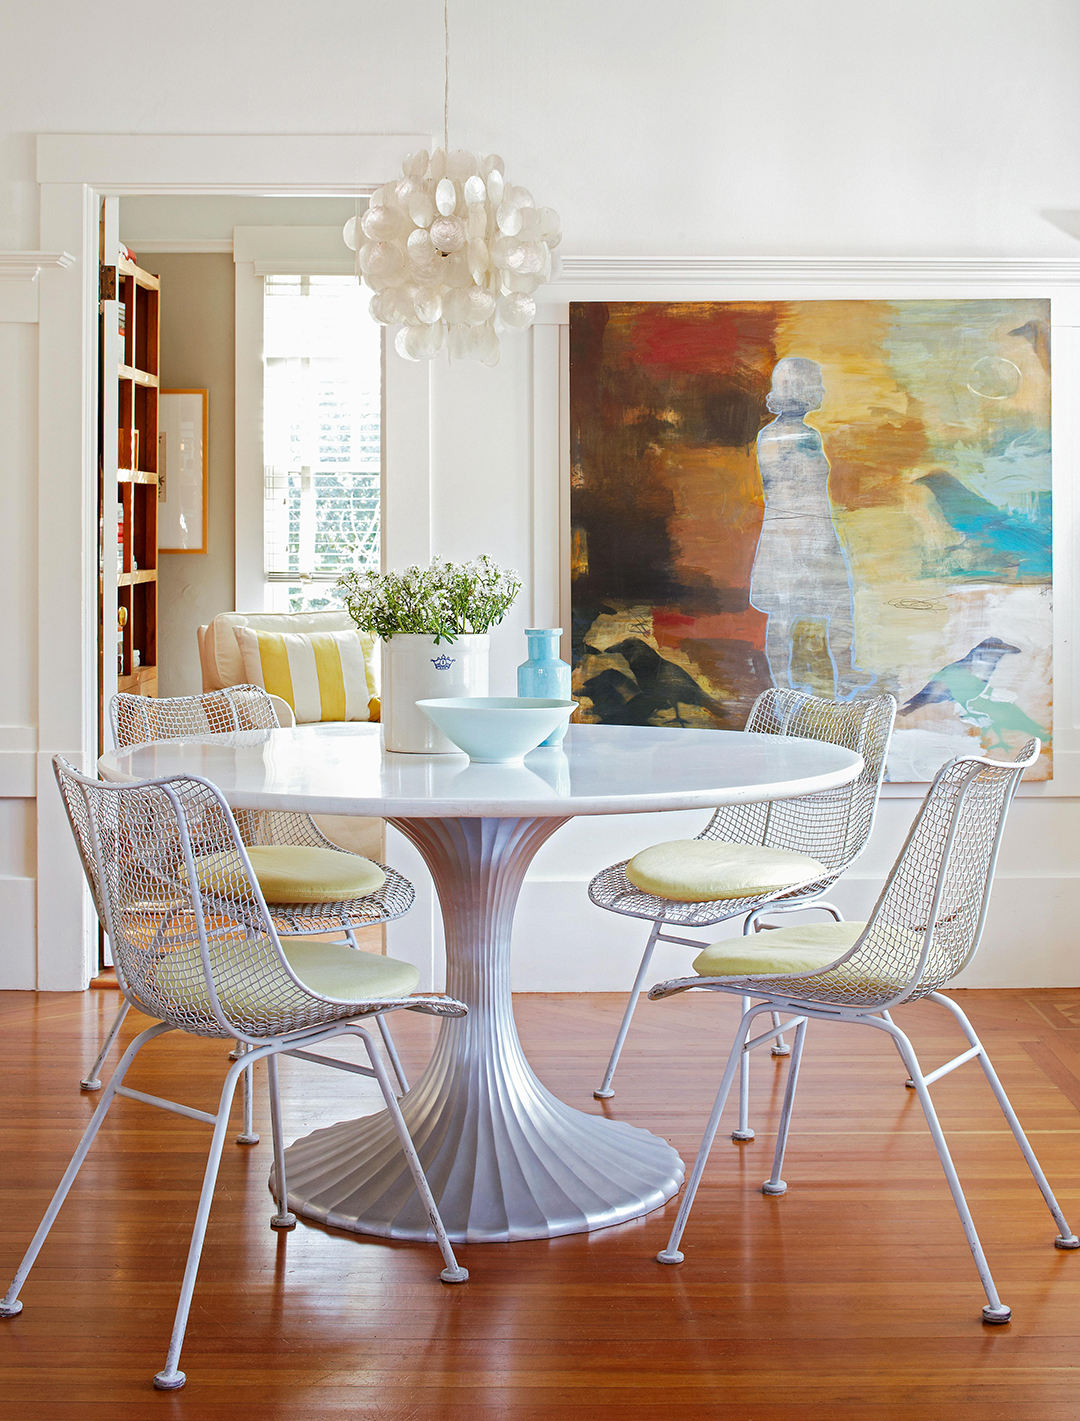 dining room with round table and art decor